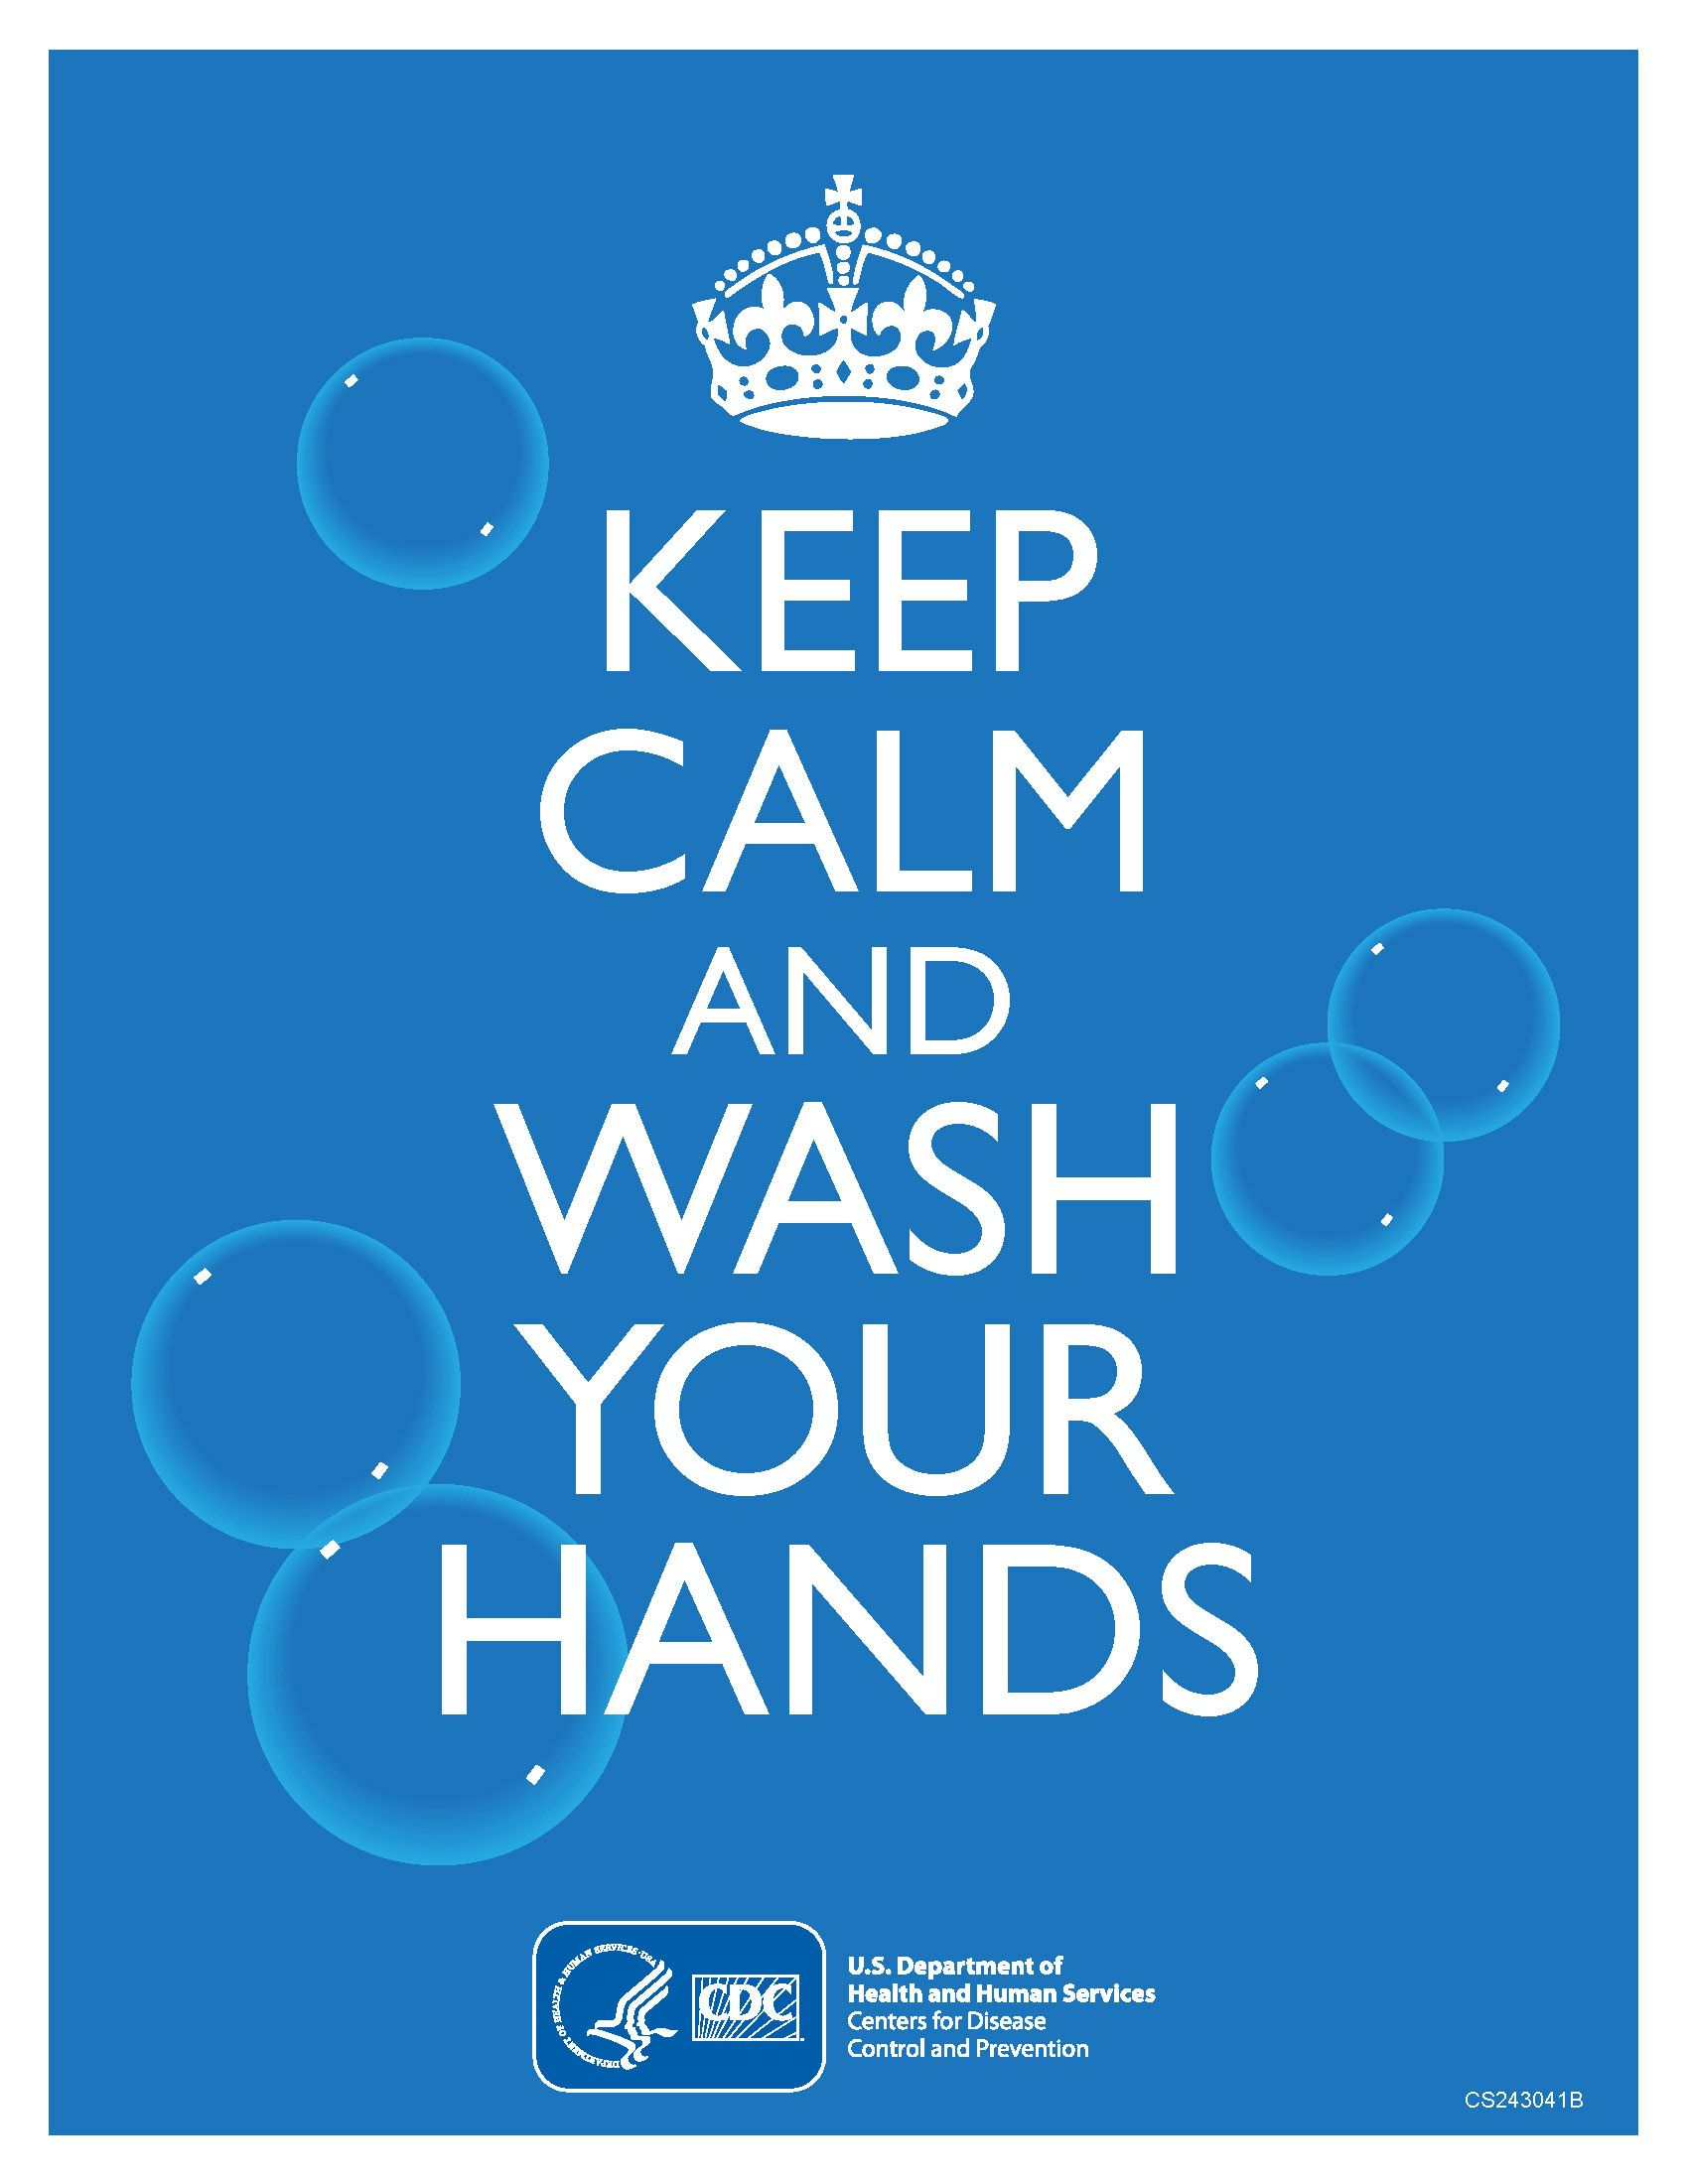 Did you know that keeping hands clean is one of the best